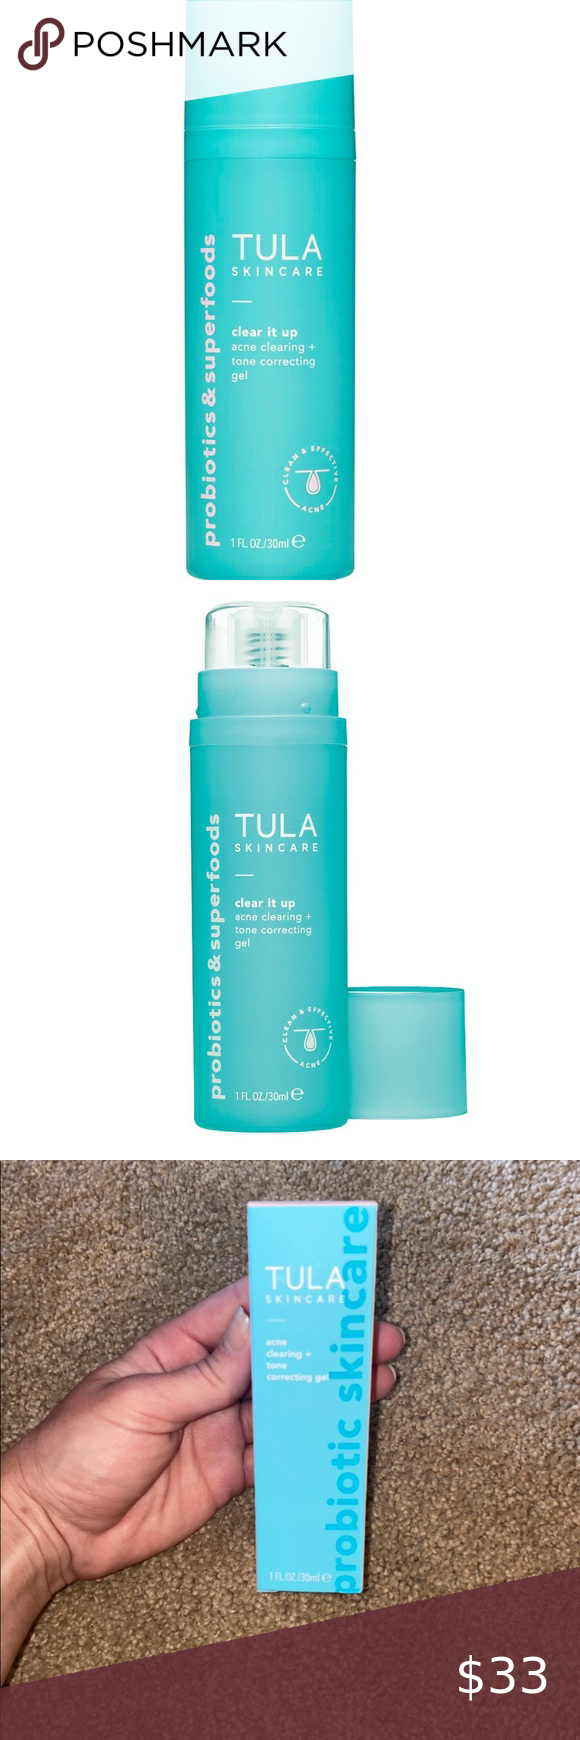 Tula Clear Acne Clearing Tone Correcting Gel In 2020 Clear Acne Gel Acne